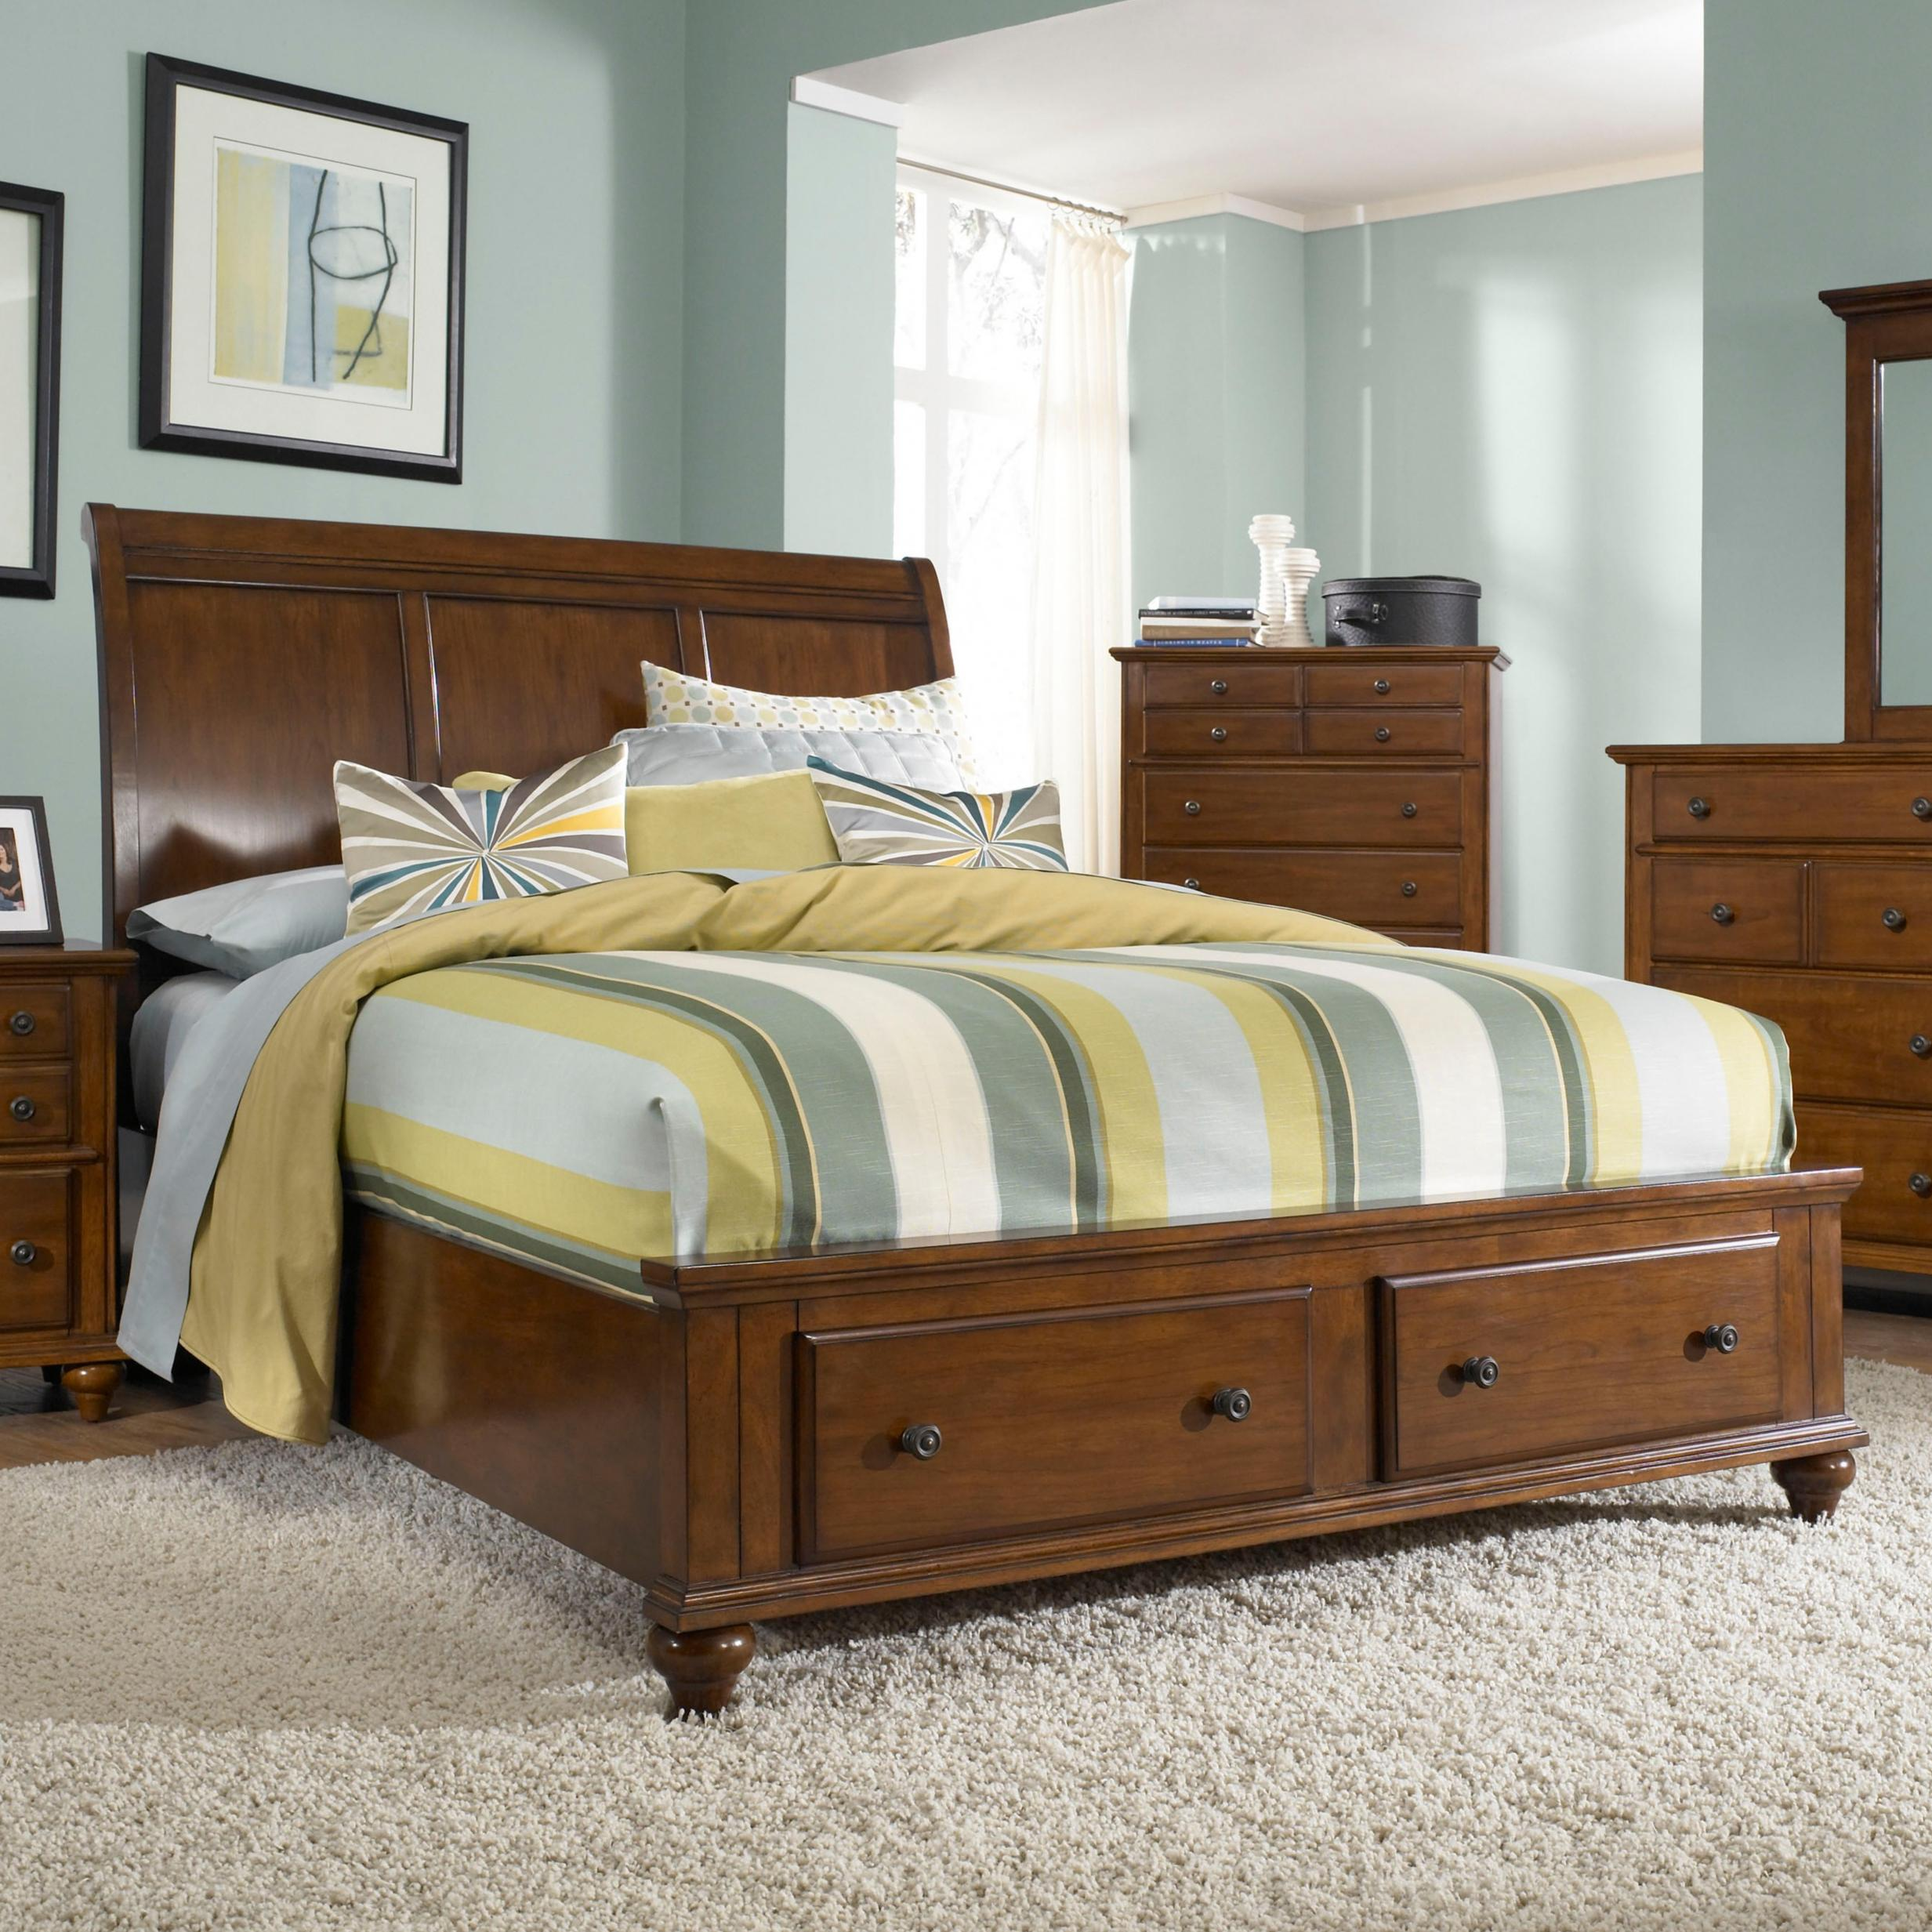 Broyhill furniture hayden place queen headboard and storage footboard sleigh bed baer 39 s Broyhill master bedroom sets